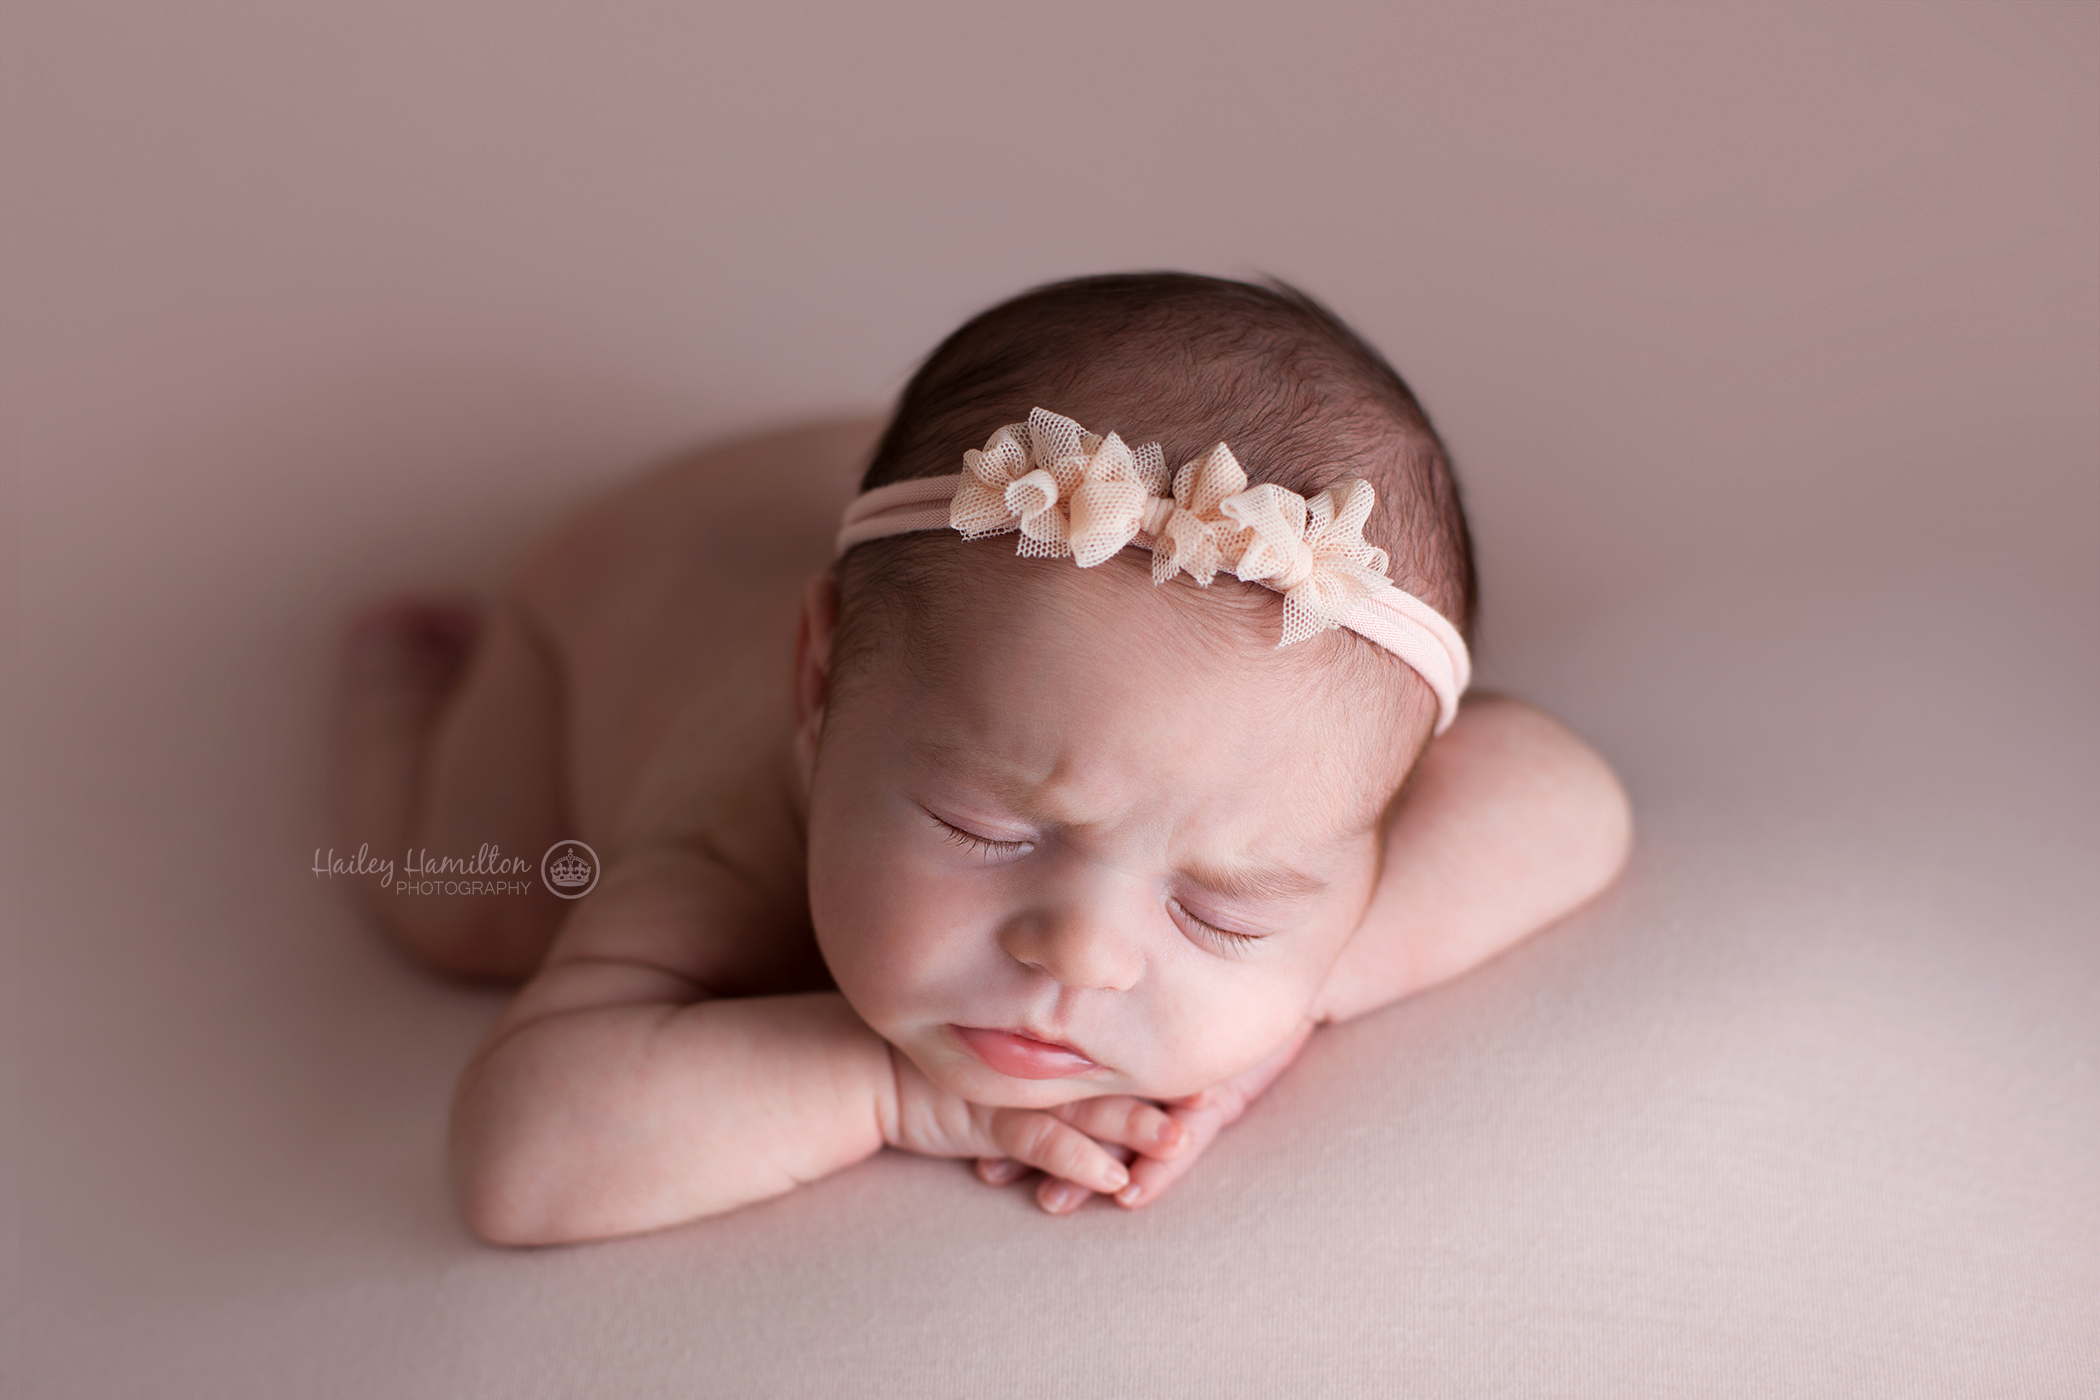 Hailey-Hamilton-Photography-Calgary-newborn-posing-mentoring-workshop.png